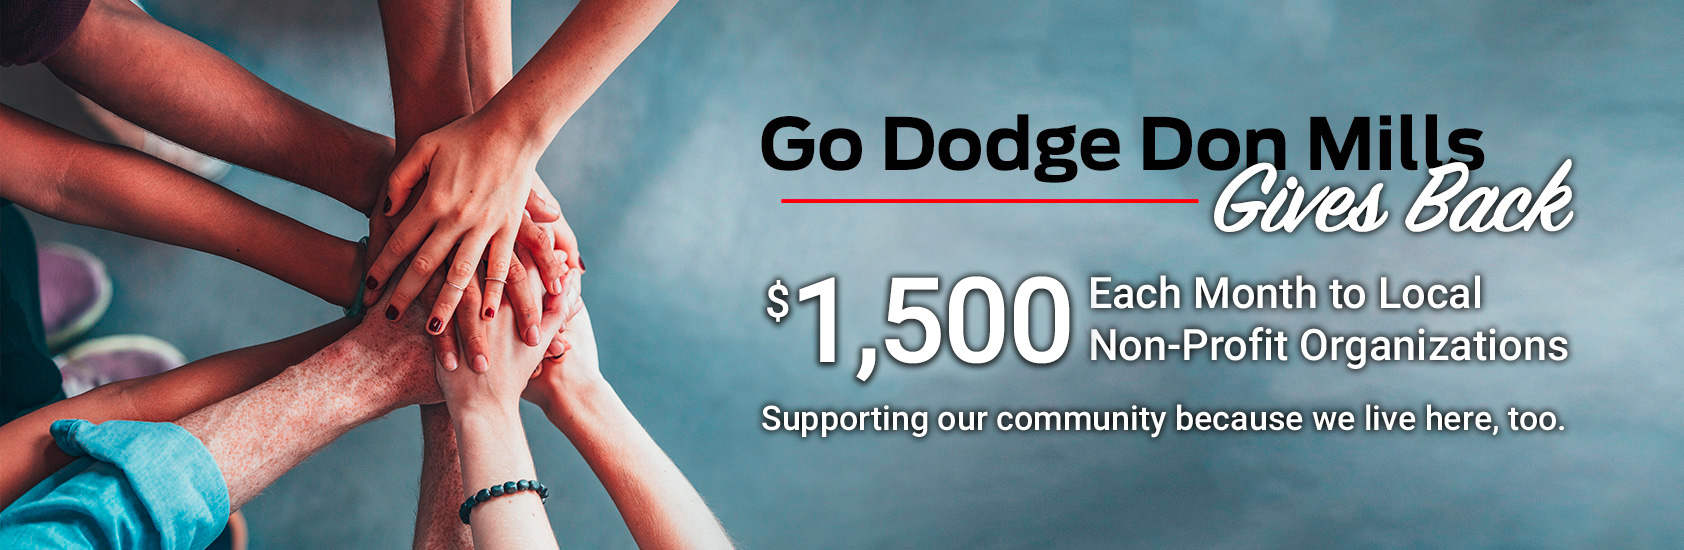 Go Dodge Surrey Gives Back